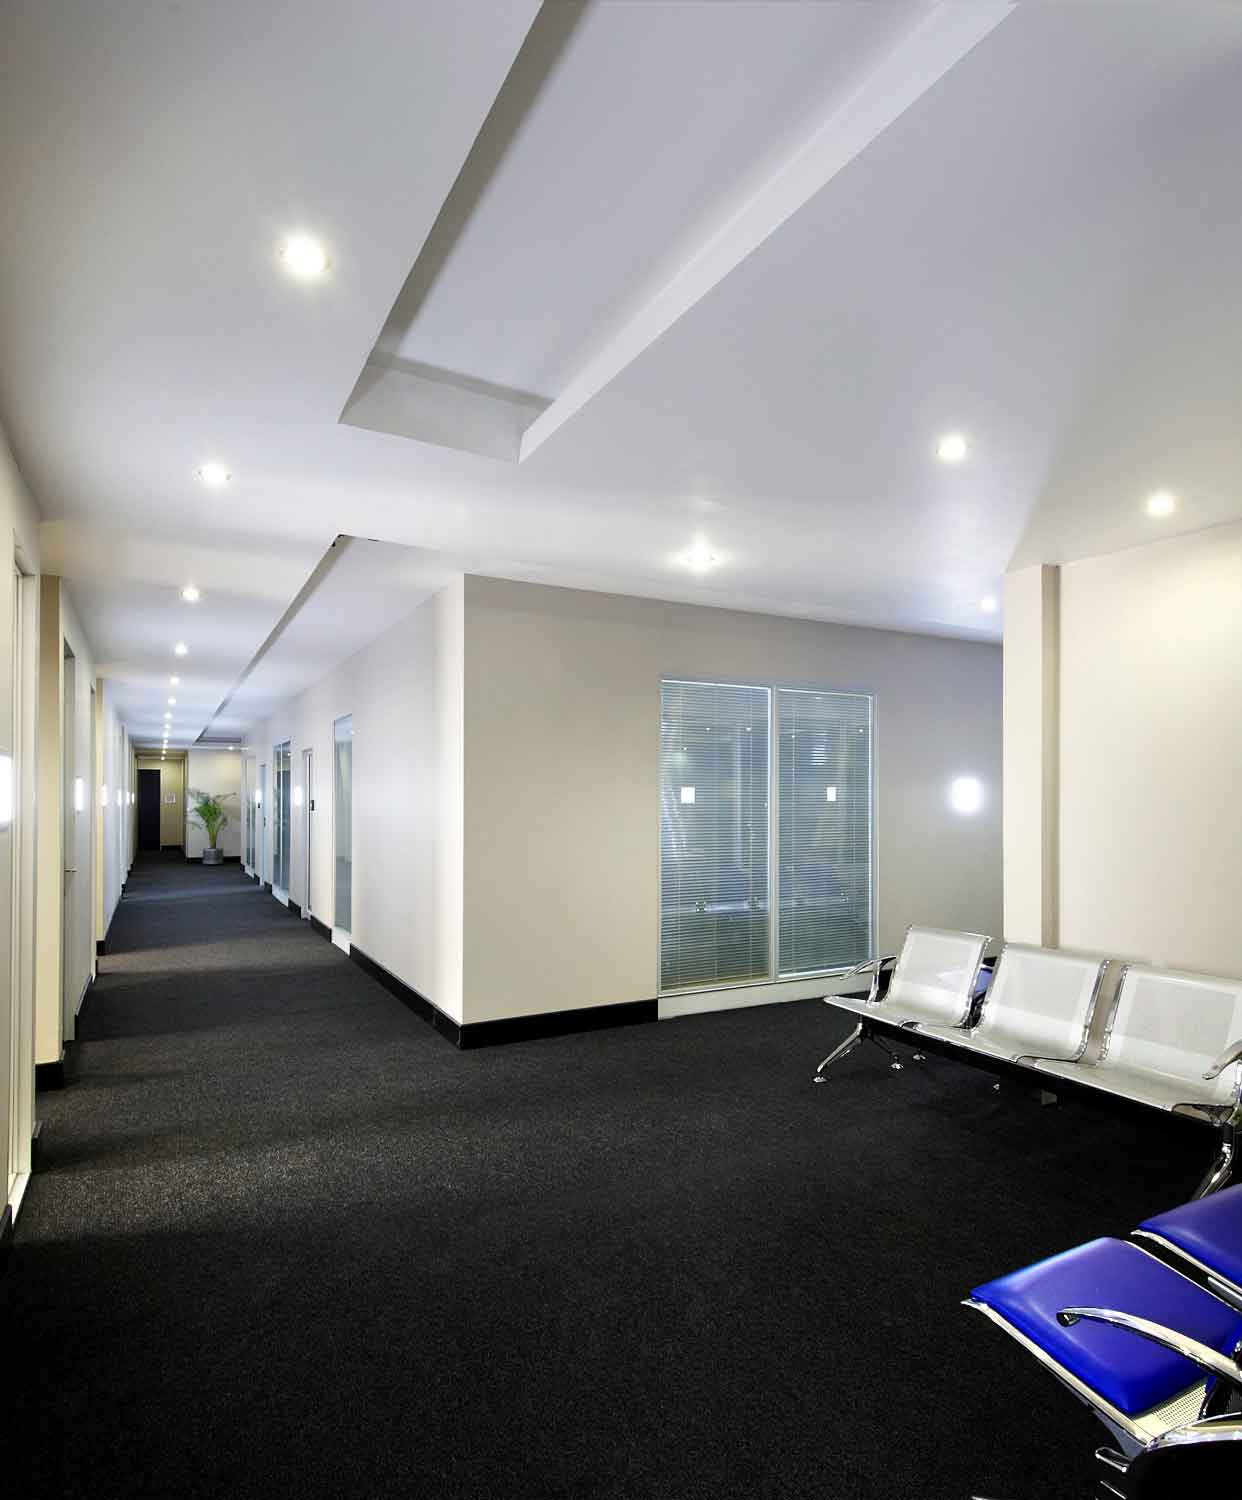 3d Ceilings Ceilings Partitioning And Dry Walling Suppliers